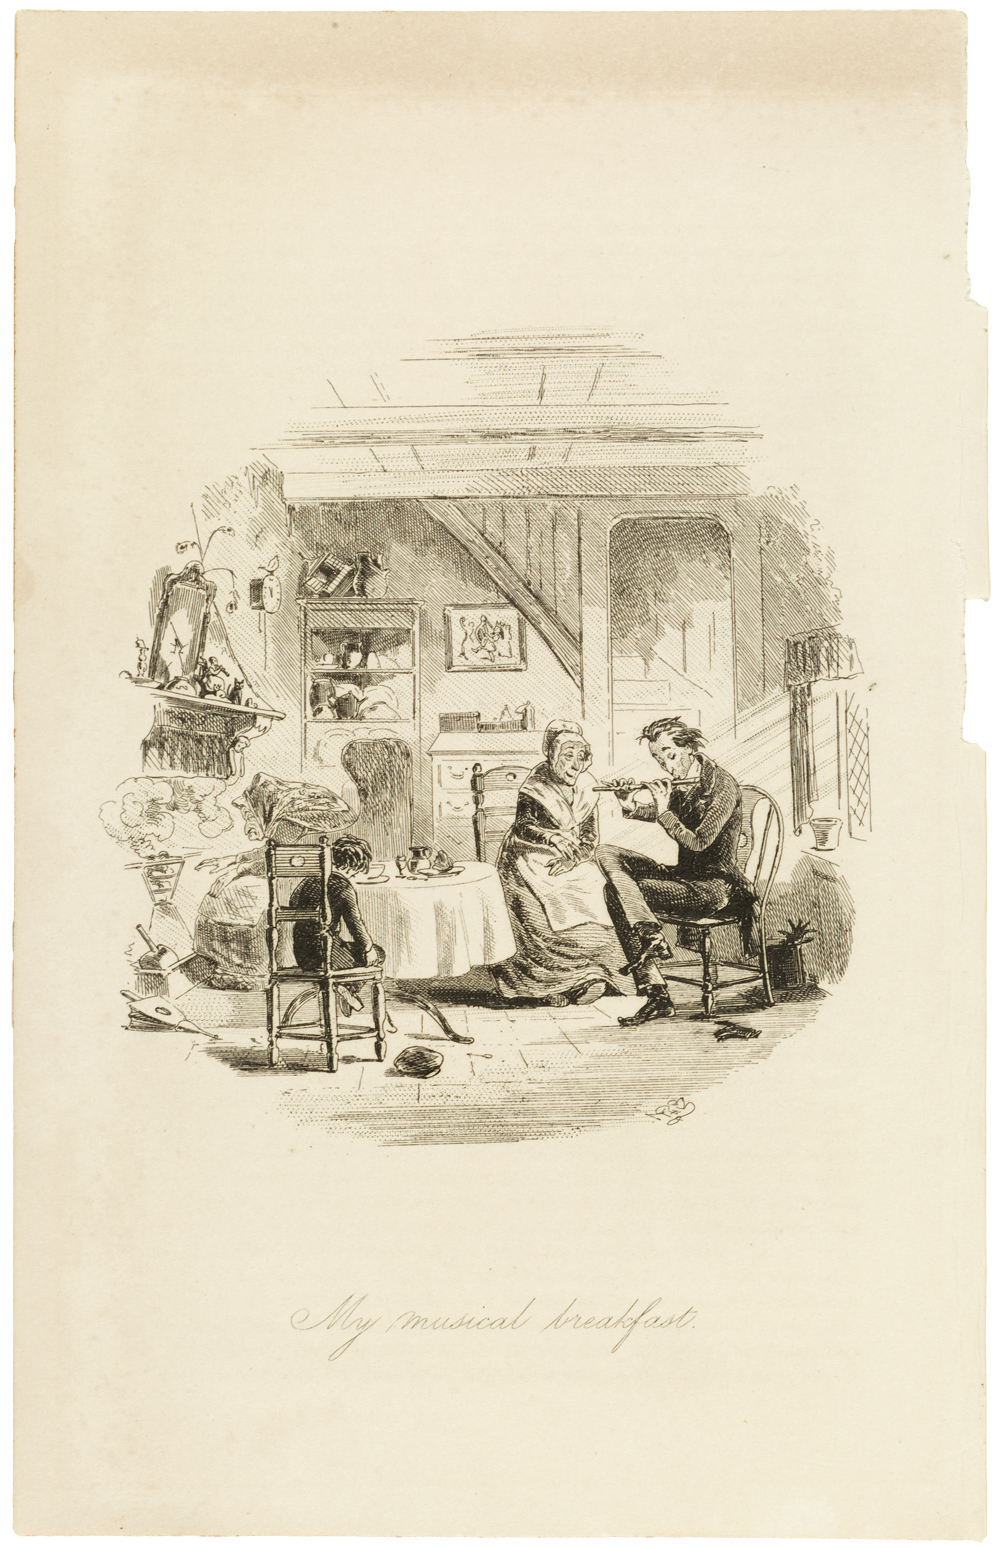 illustrations for dickens novels victoria and albert museum steerforth and mr mel etched illustration by hablot knight browne for david copperfield by charles dickens